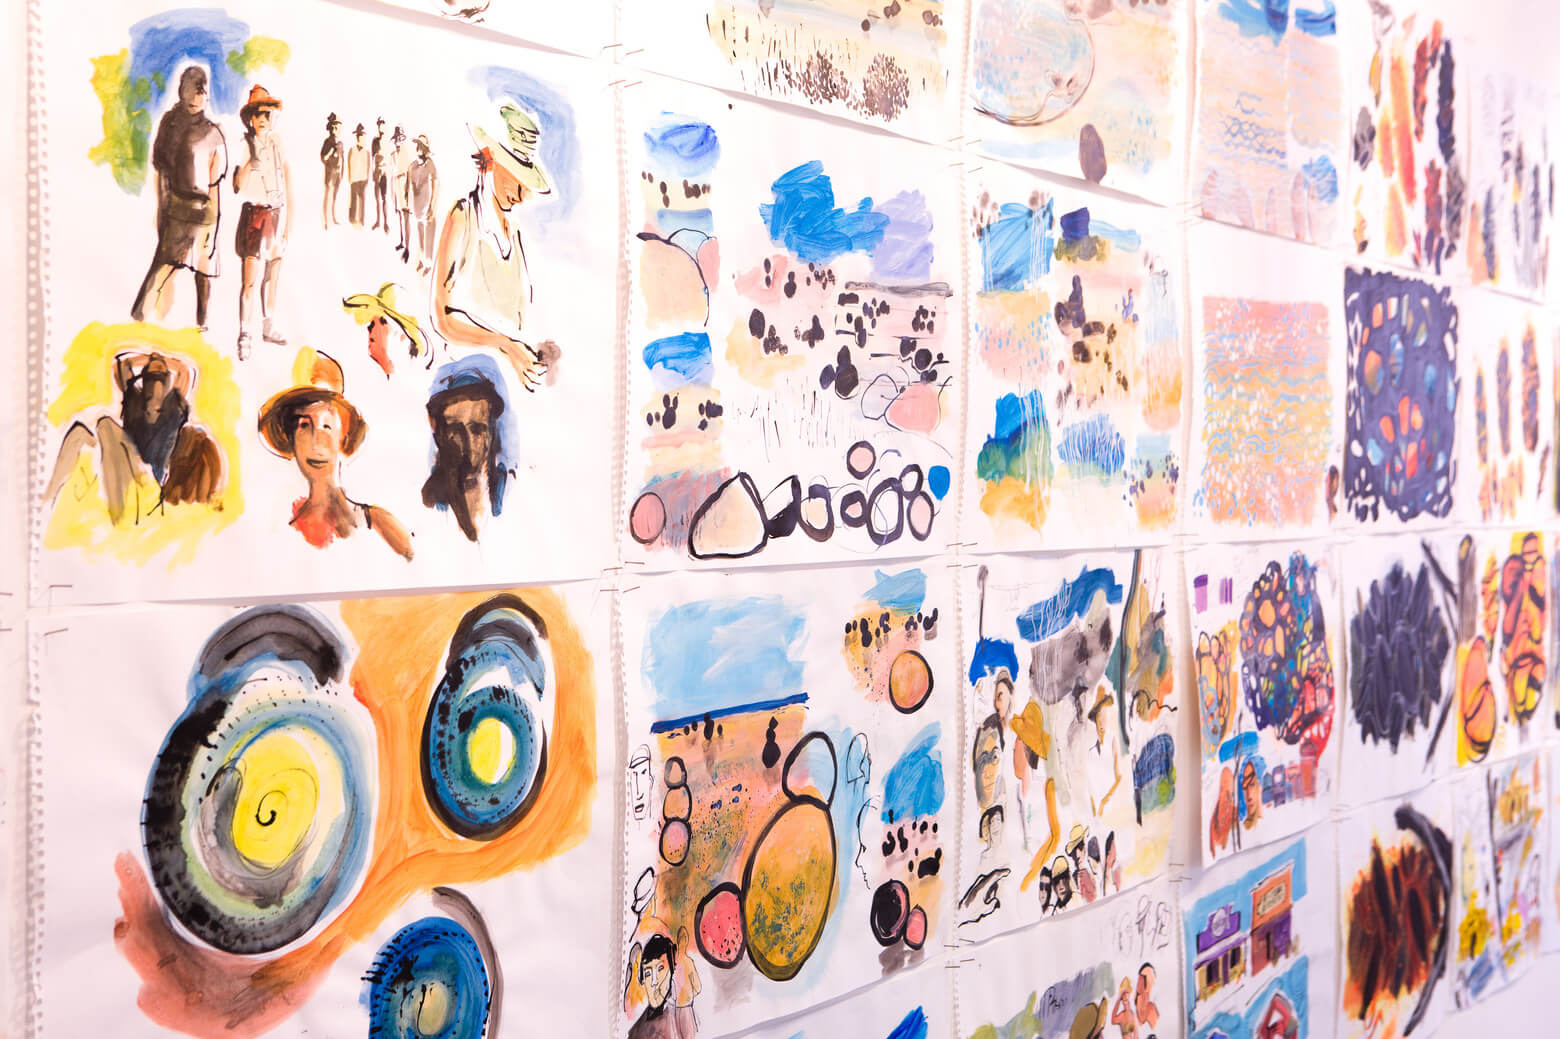 Artwork in an exhibition setting